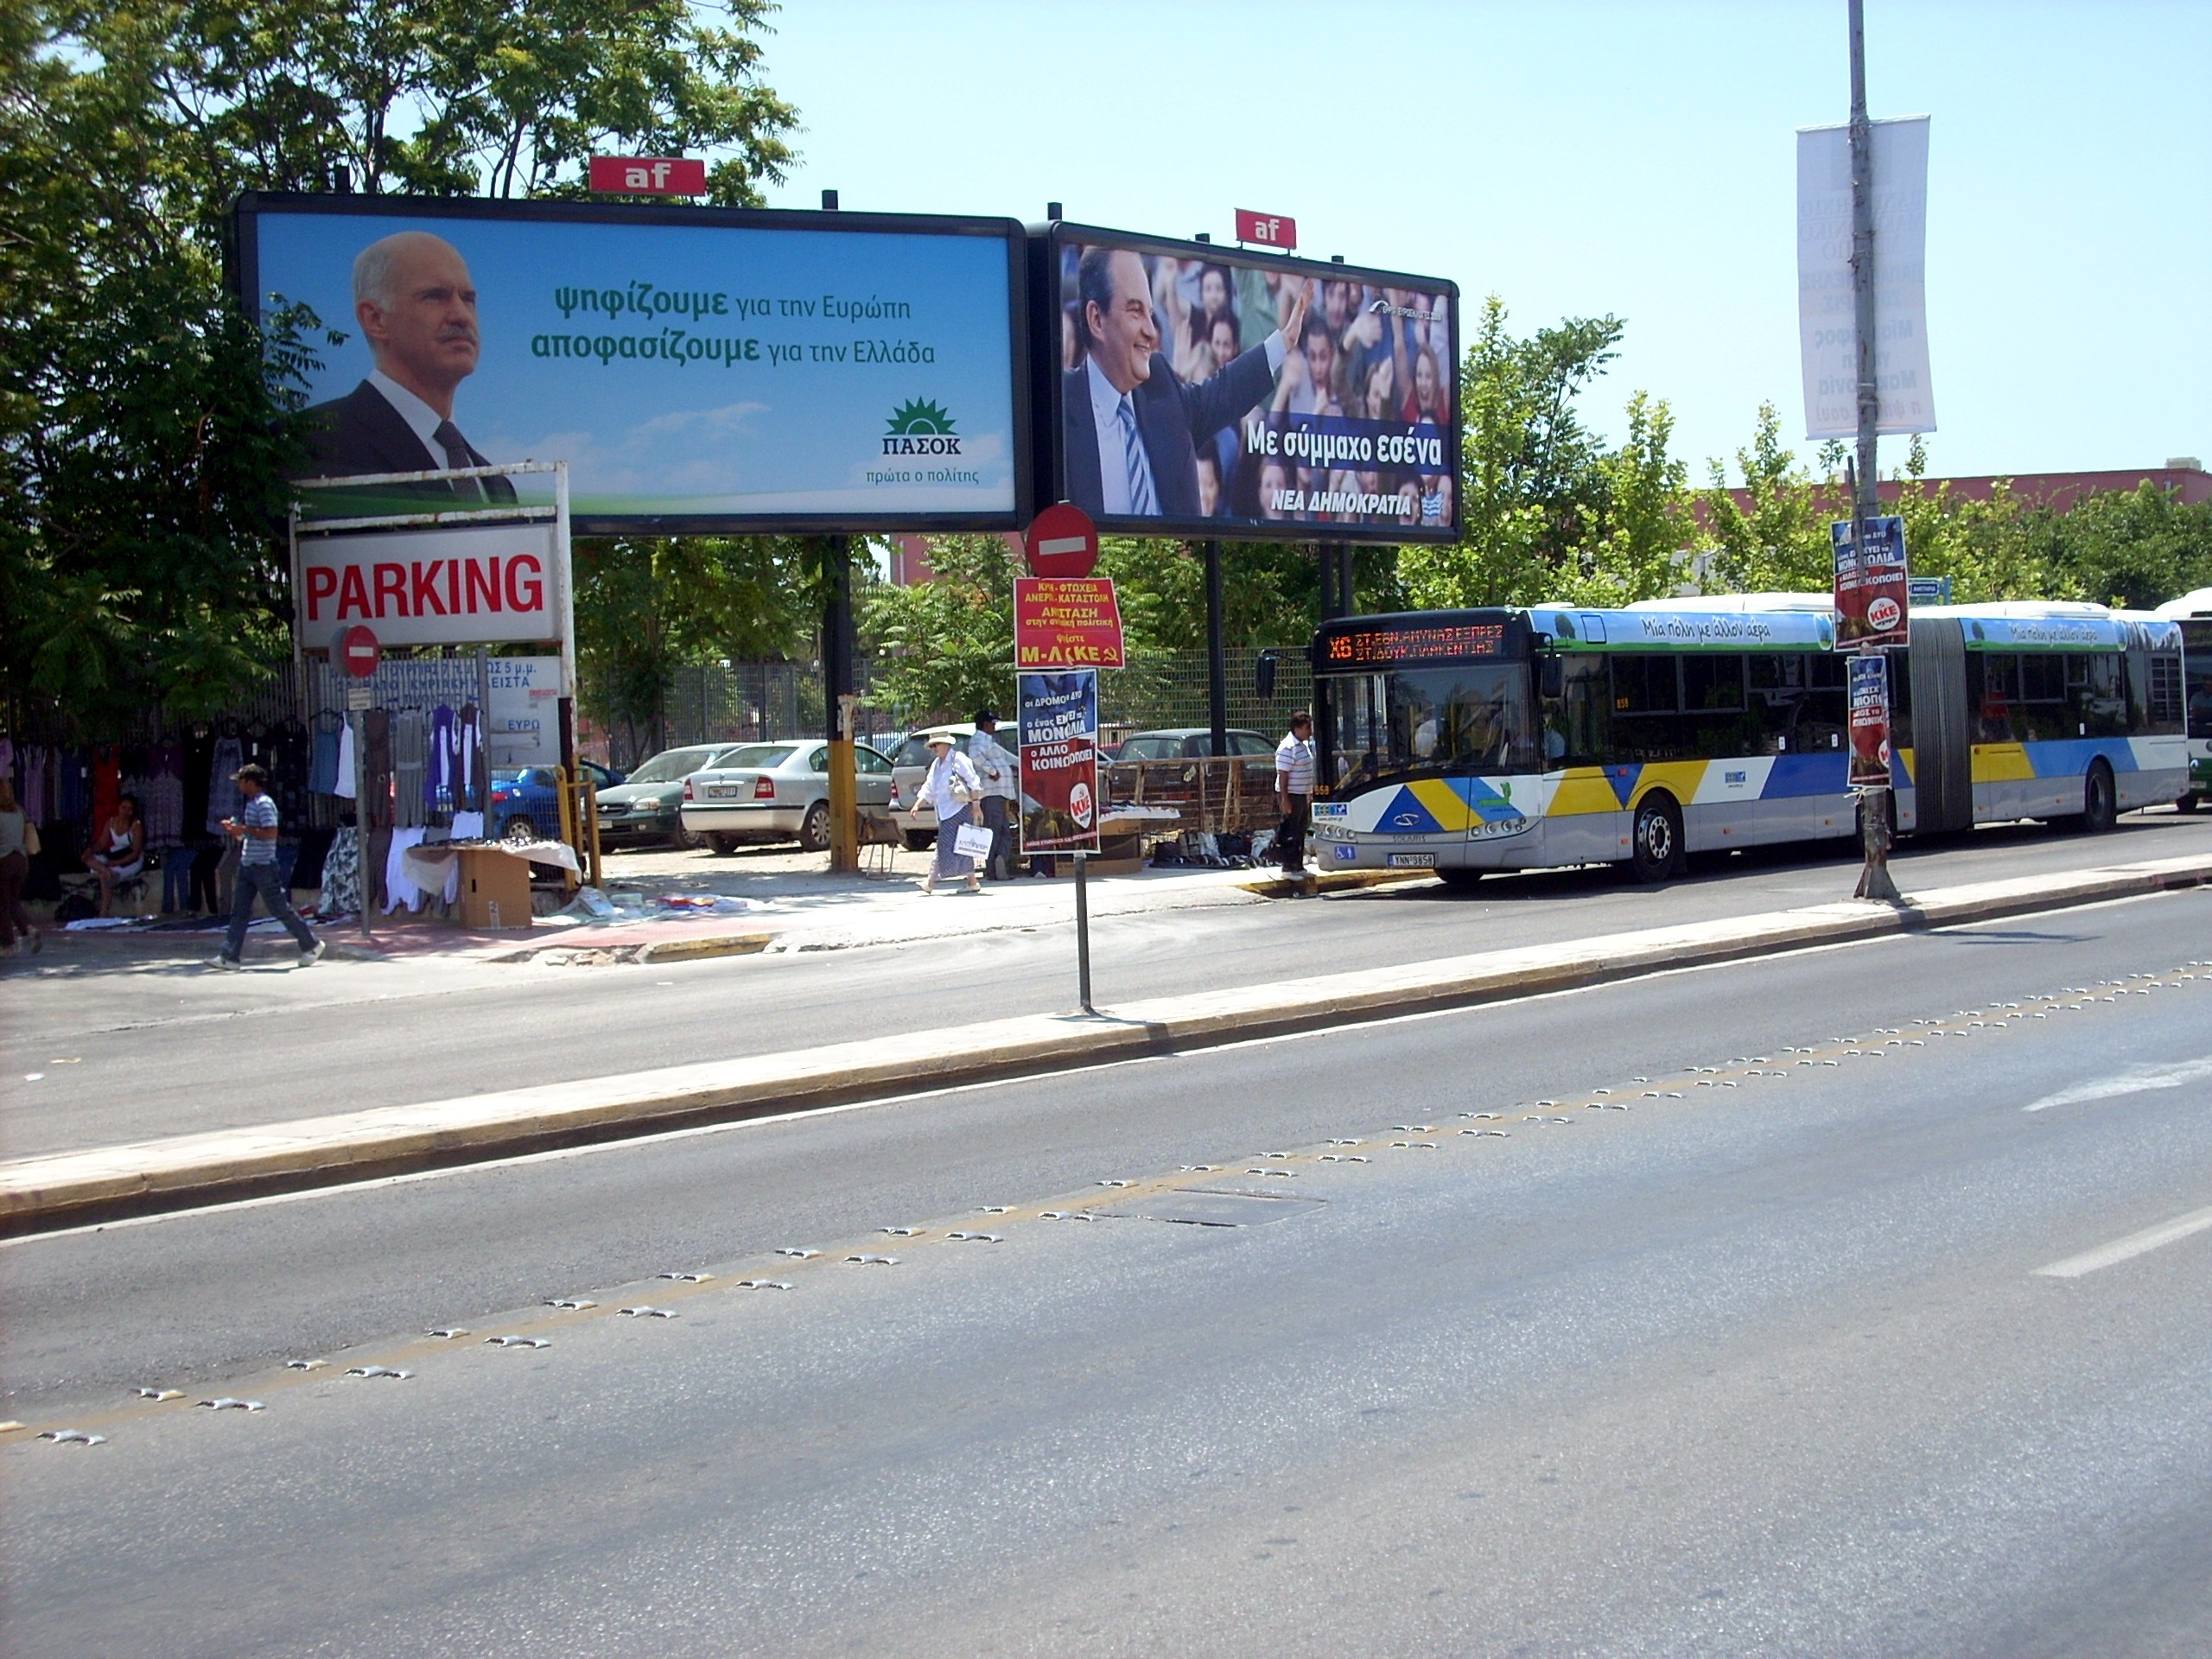 https://i1.wp.com/upload.wikimedia.org/wikipedia/commons/5/50/Bus_stop_near_Ethniki_Amina.jpg